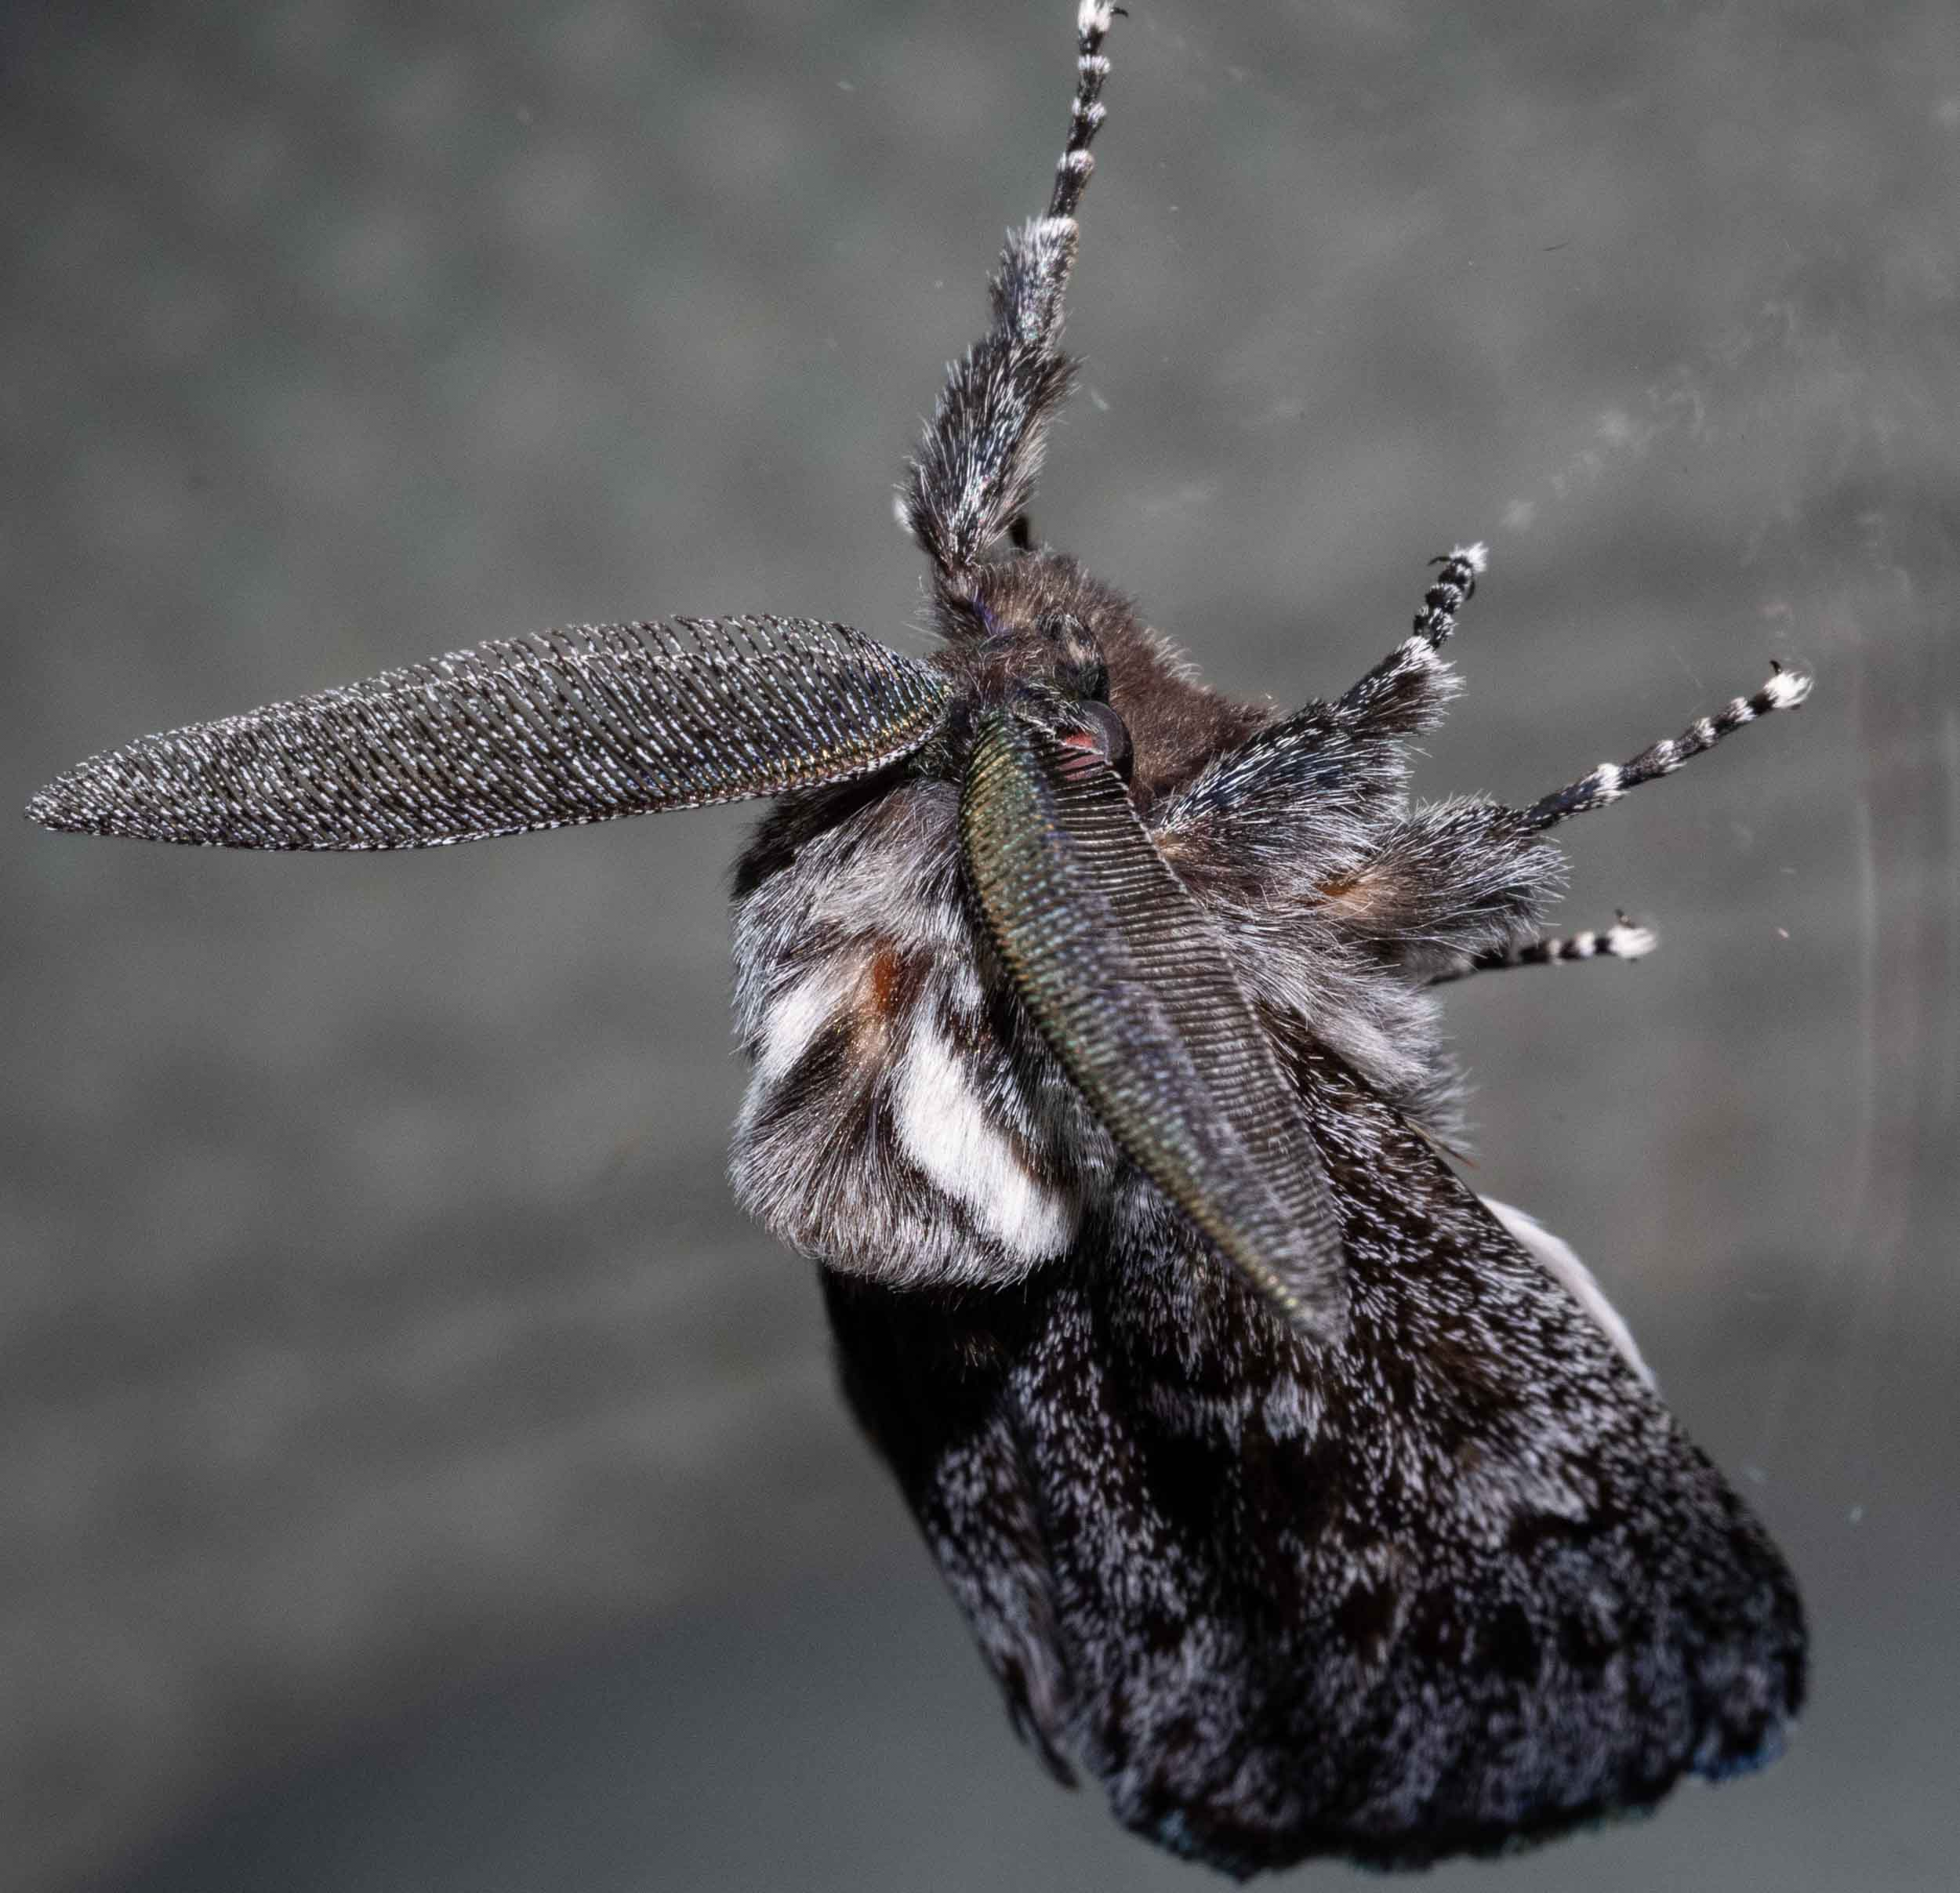 Ptilomacra senex   At one stage, there were seven, at a single window! And all sporting those impressive antennae.   Family: Cossidae